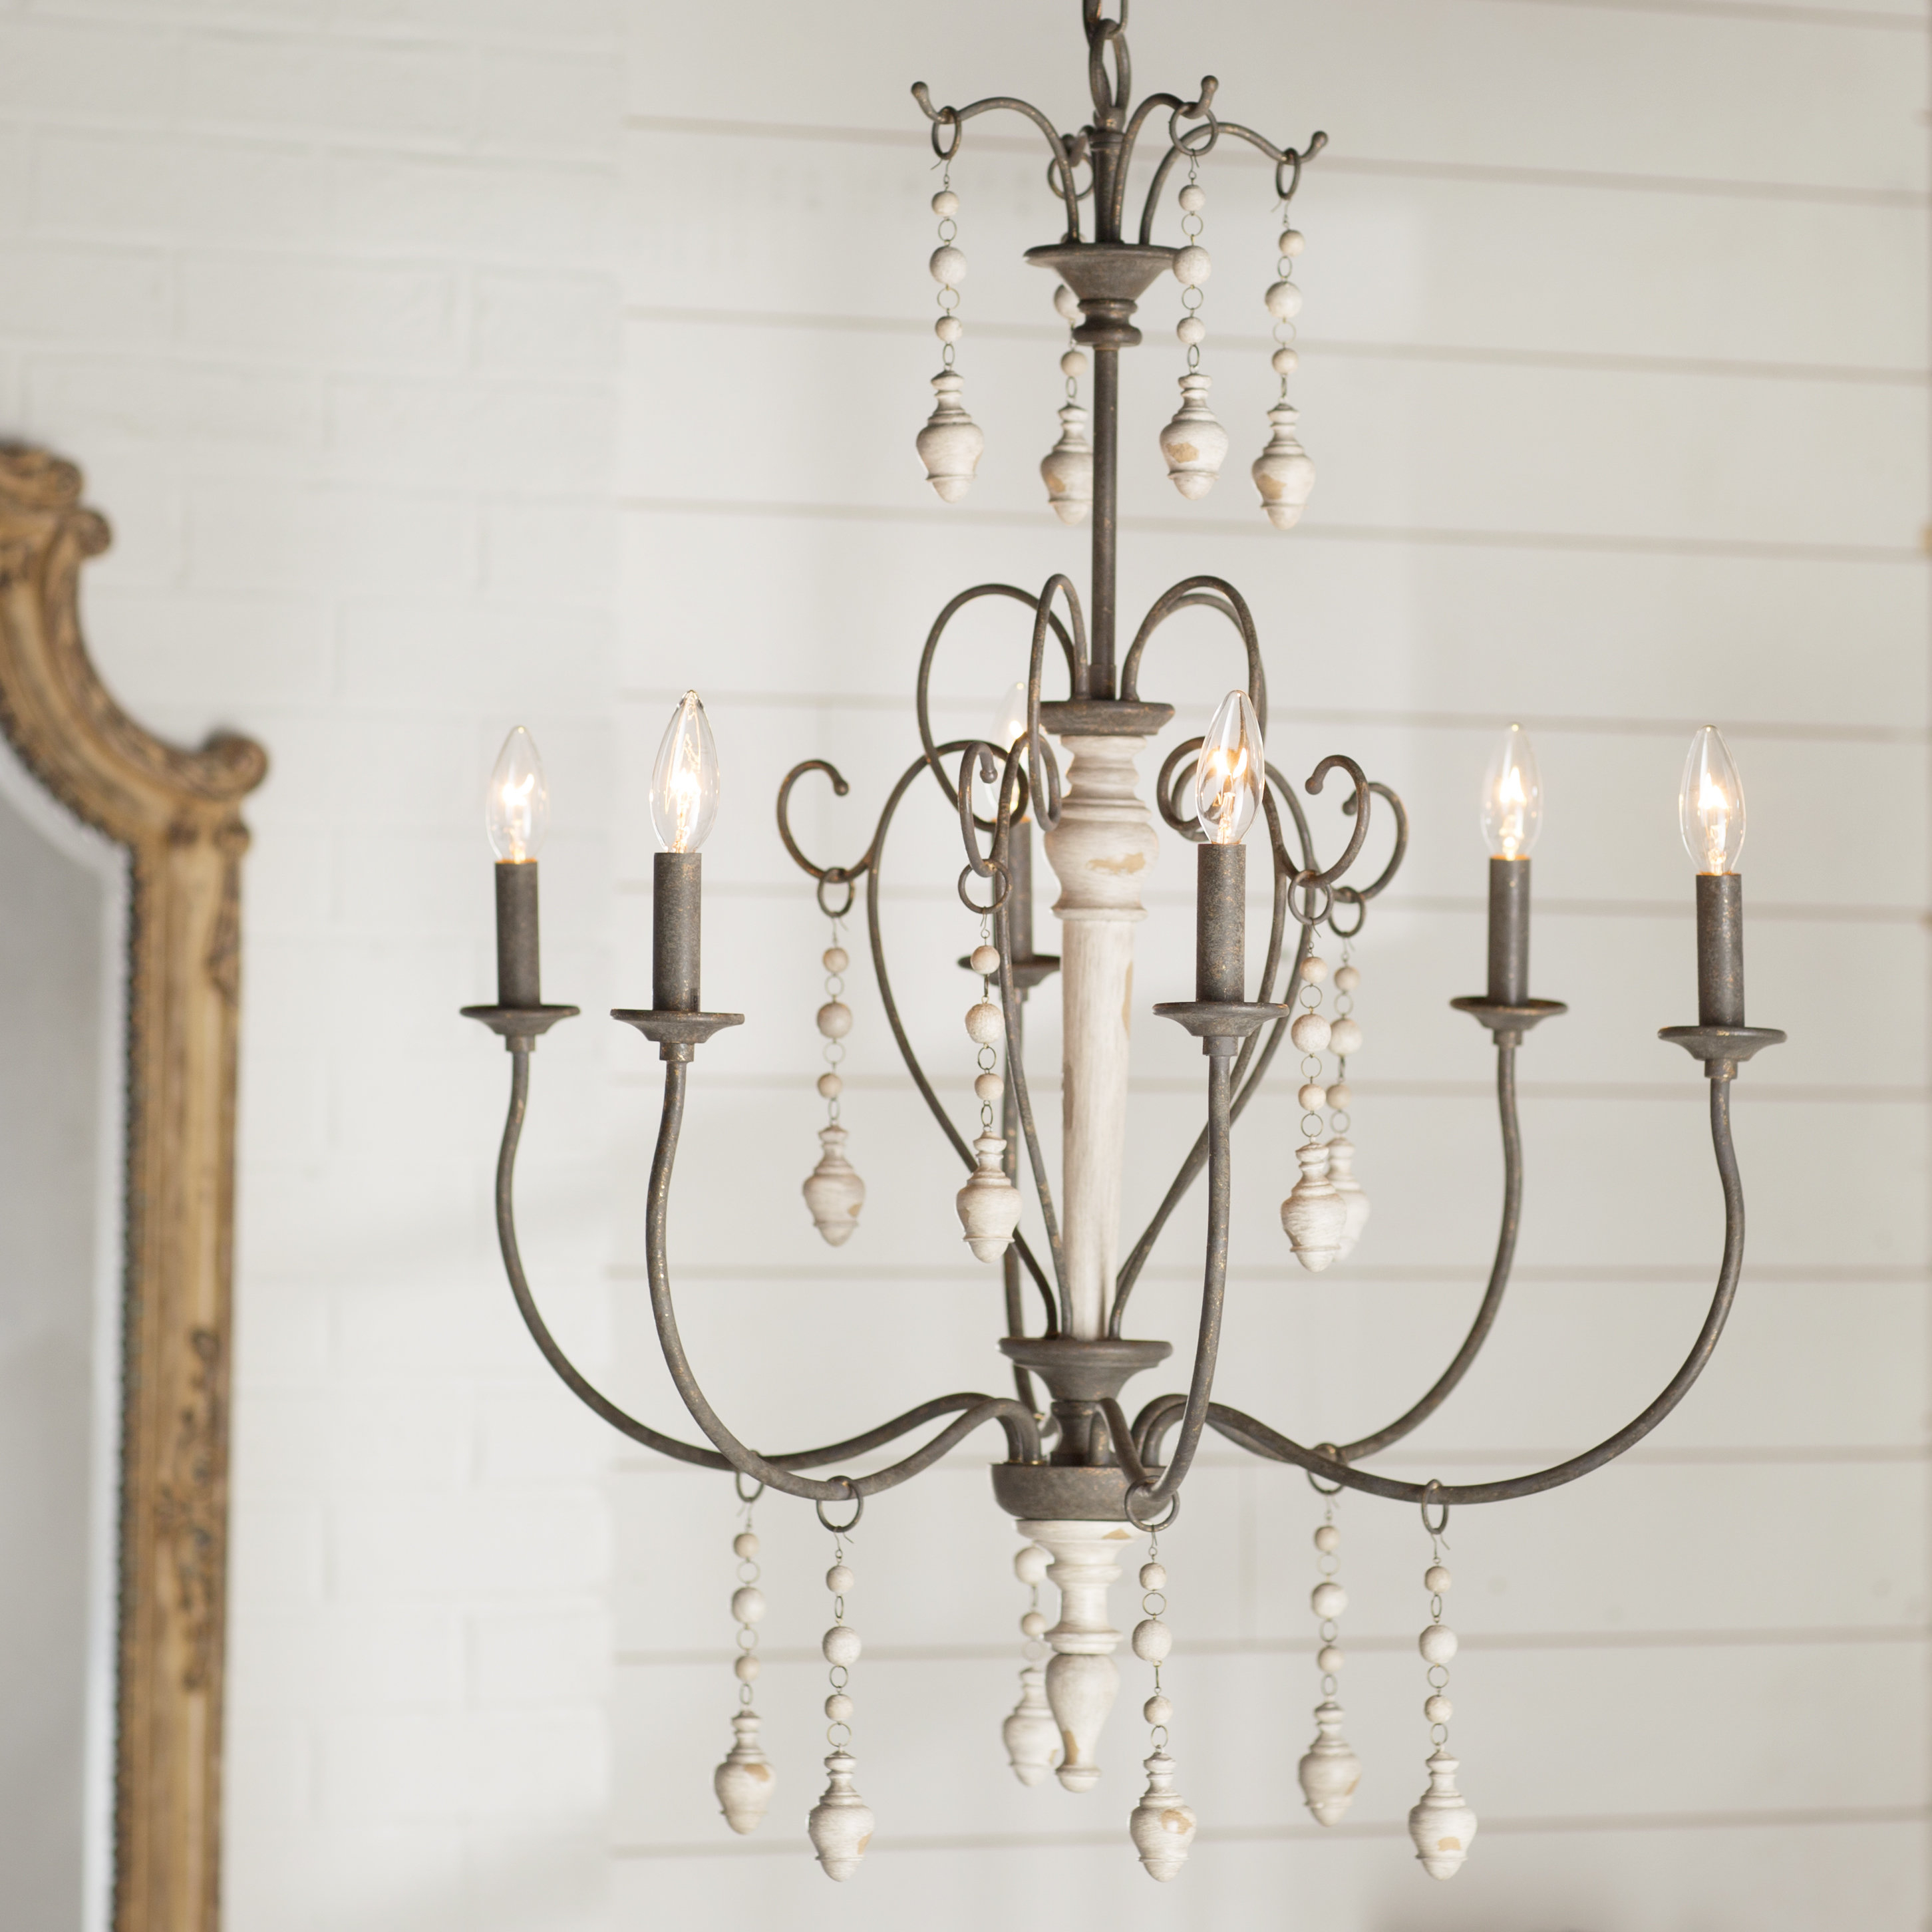 Bouchette Traditional 6-Light Candle Style Chandelier with regard to Shaylee 5-Light Candle Style Chandeliers (Image 4 of 30)